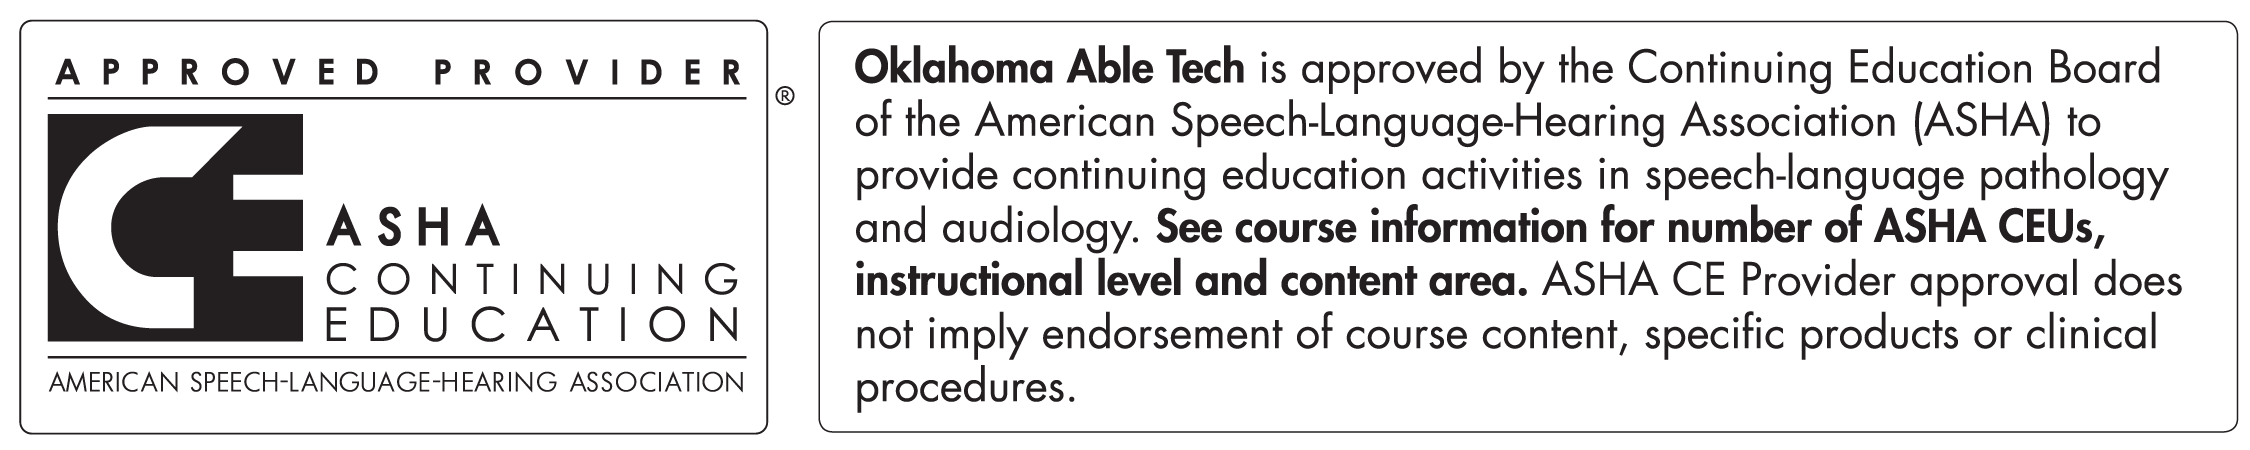 Approved Provider ASHA Continuing Education American Speech-Language-Hearing Association. Oklahoma ABLE Tech is approved by the Continuing Education Board of the American Speech-Language-Hearing Association (ASHA) to provide continuing education activities in speech-language pathology and audiology. See course information for number of ASHA CEUs, instructional level and content area. ASHA CE Provider approval does not imply endorsement of course content, specific products or clinical procedures.